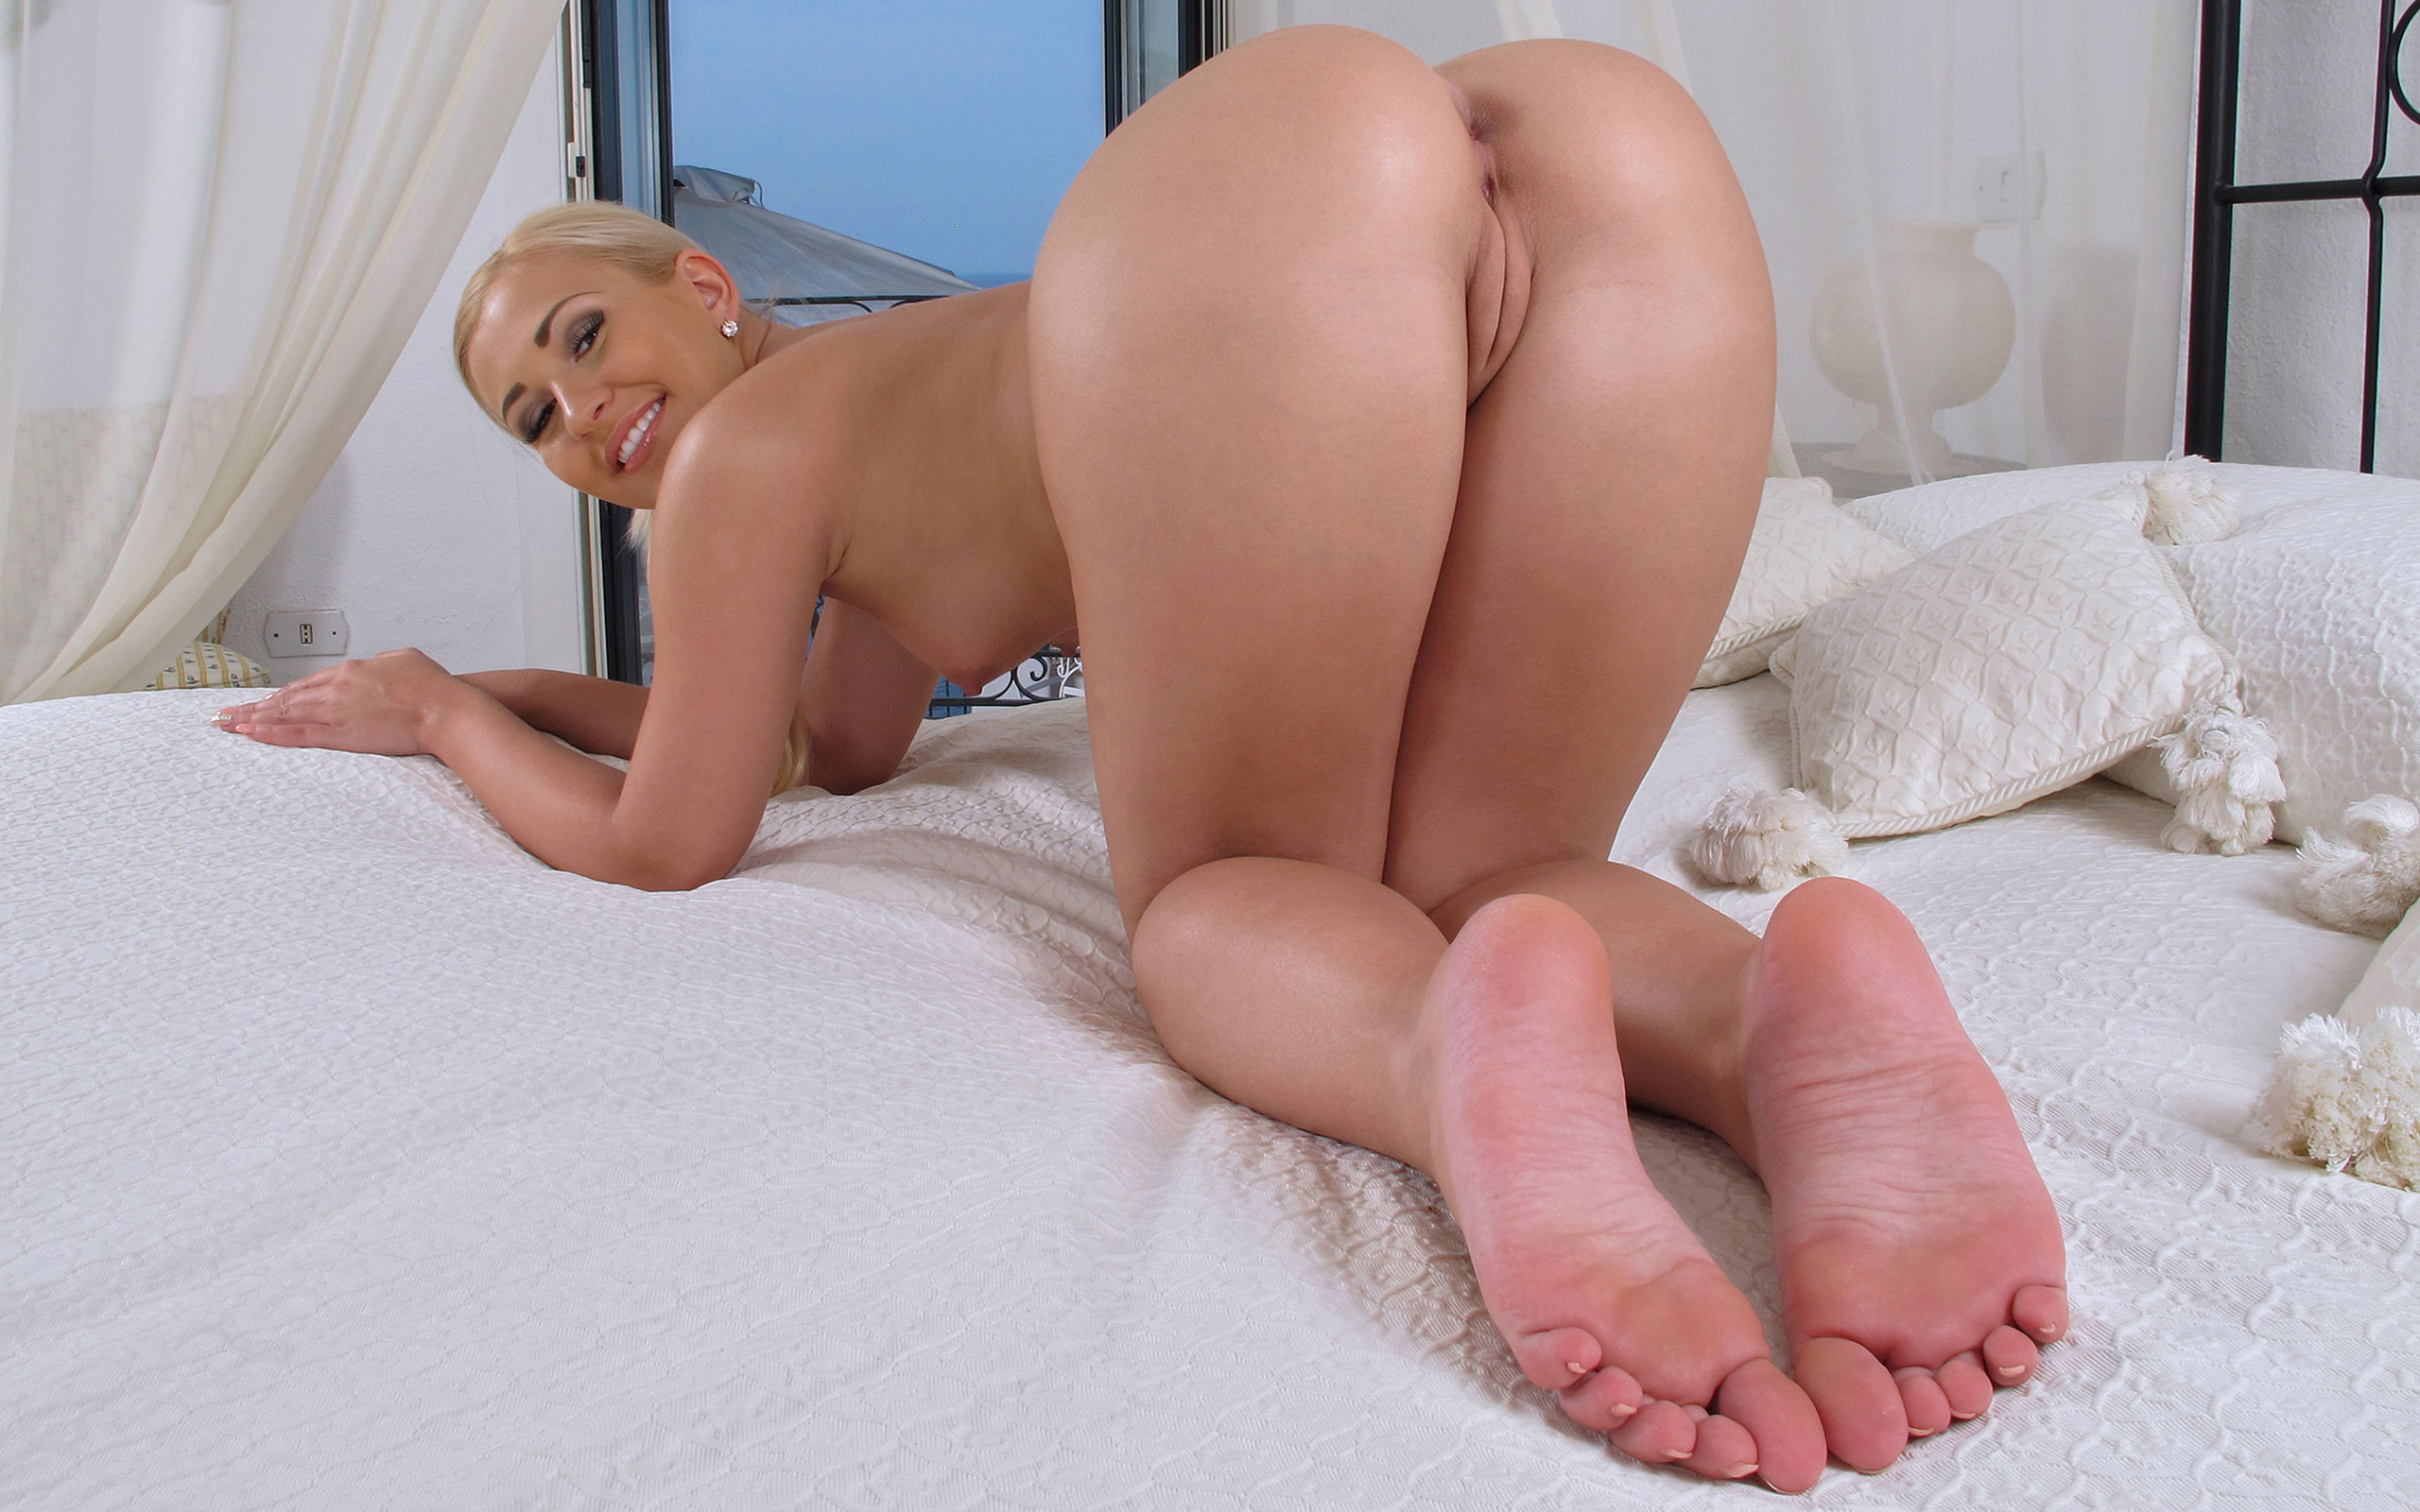 wallpaper tracy delicious hot ass pussy cunt labia